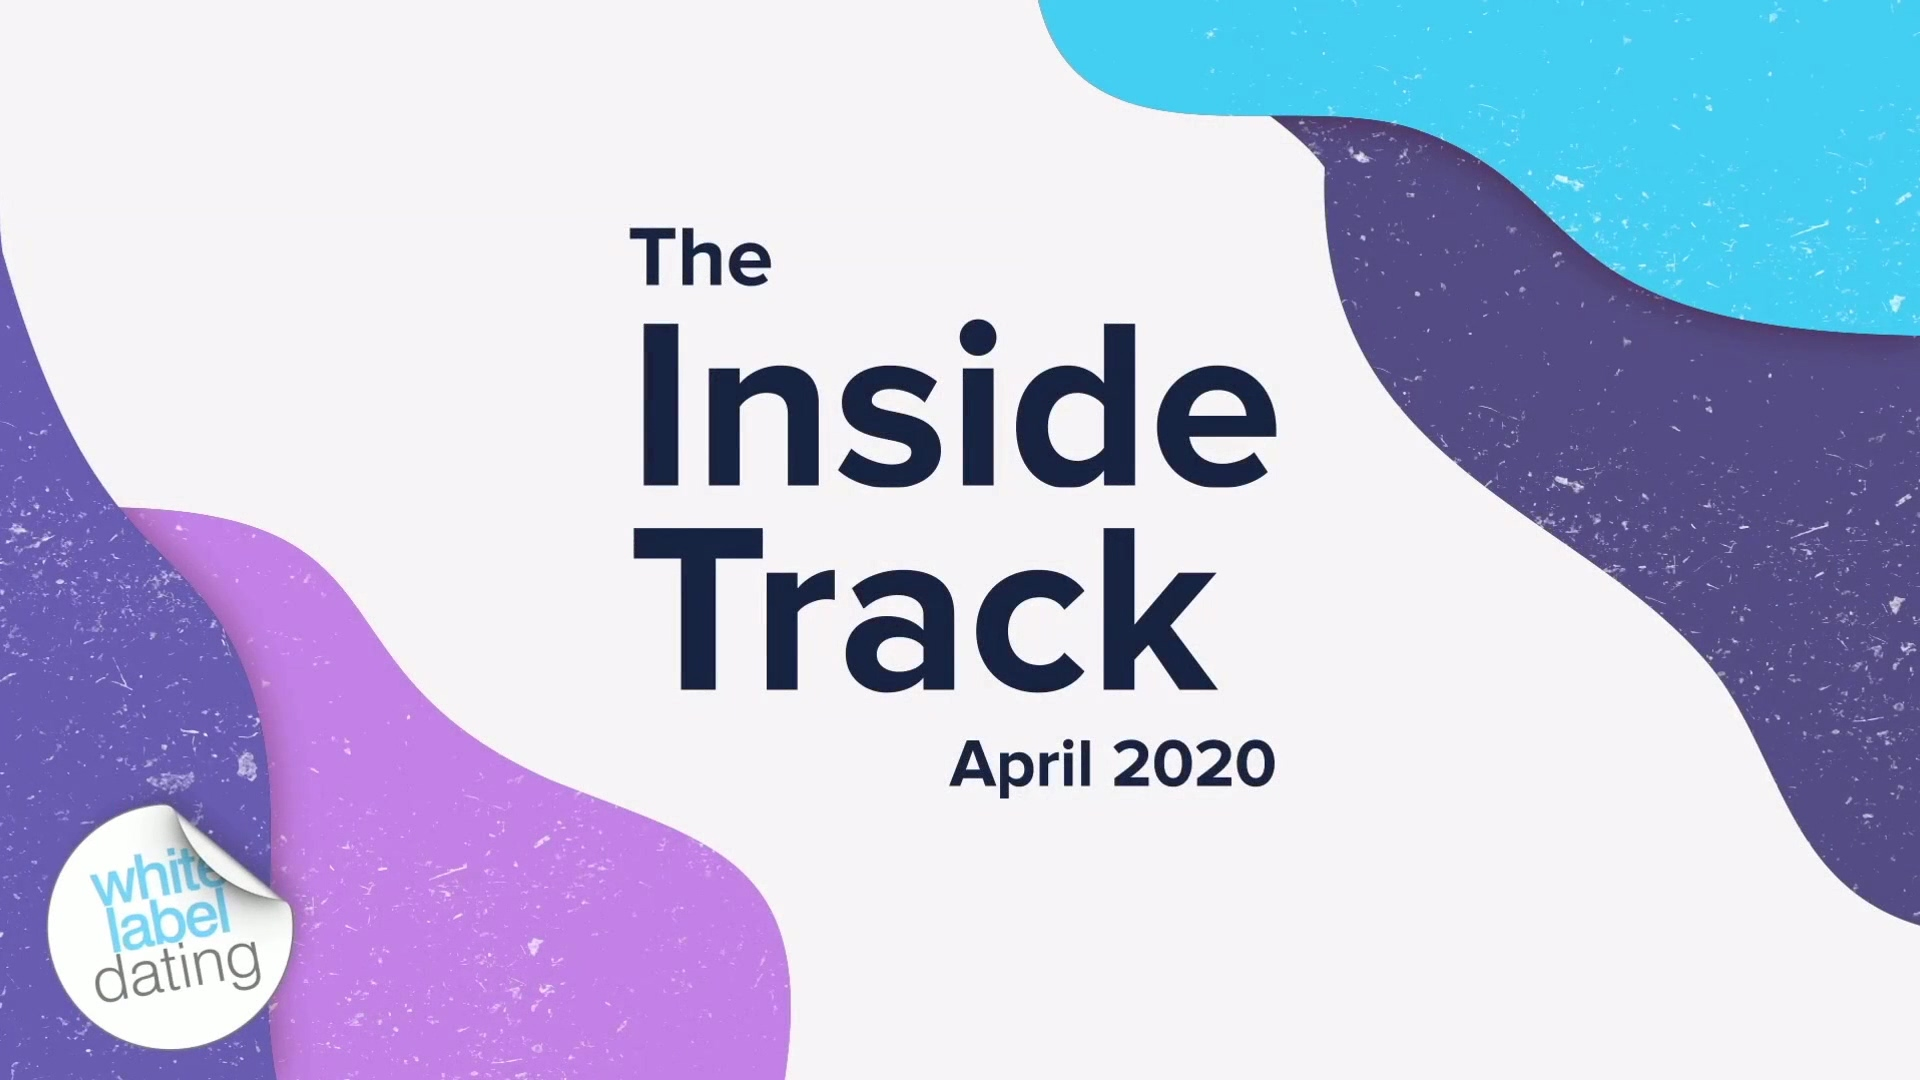 The Inside Track - April 2020 FINAL VERSION